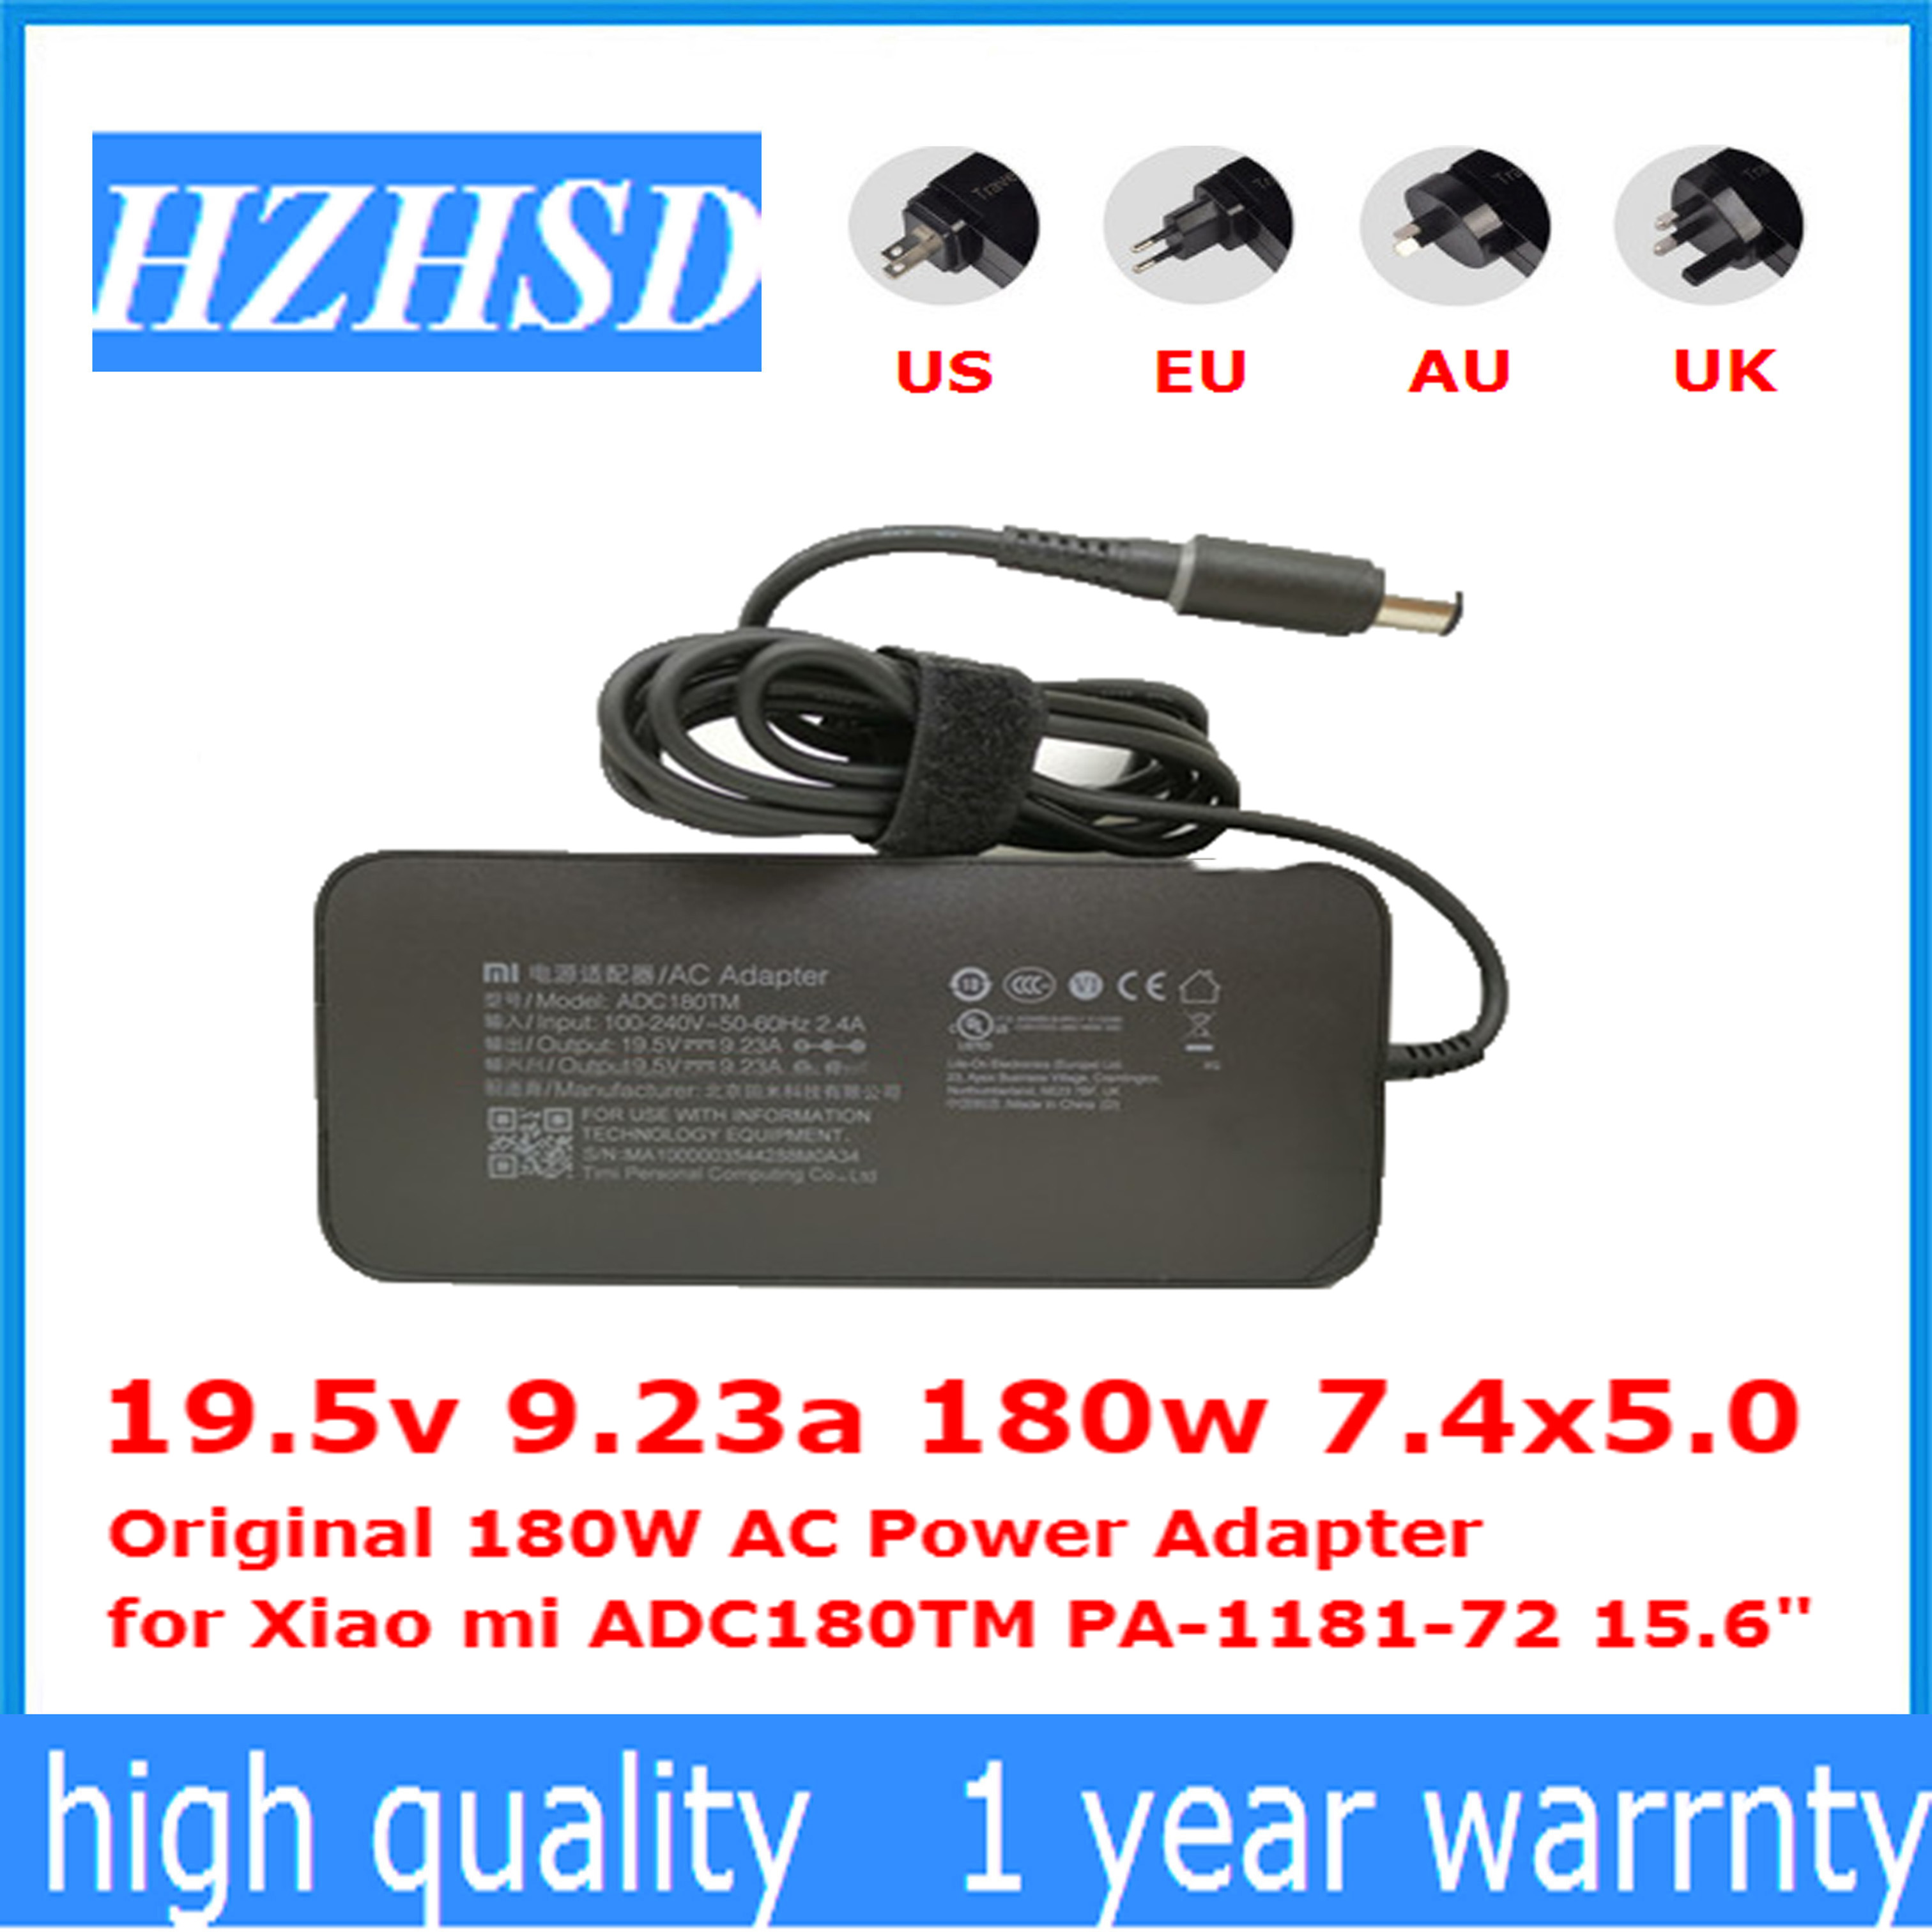 19.5v 9.23a 180w 7.4x5.0 new Original 180W AC Power Adapter for Xiao mi ADC180TM PA-1181-72 15.6